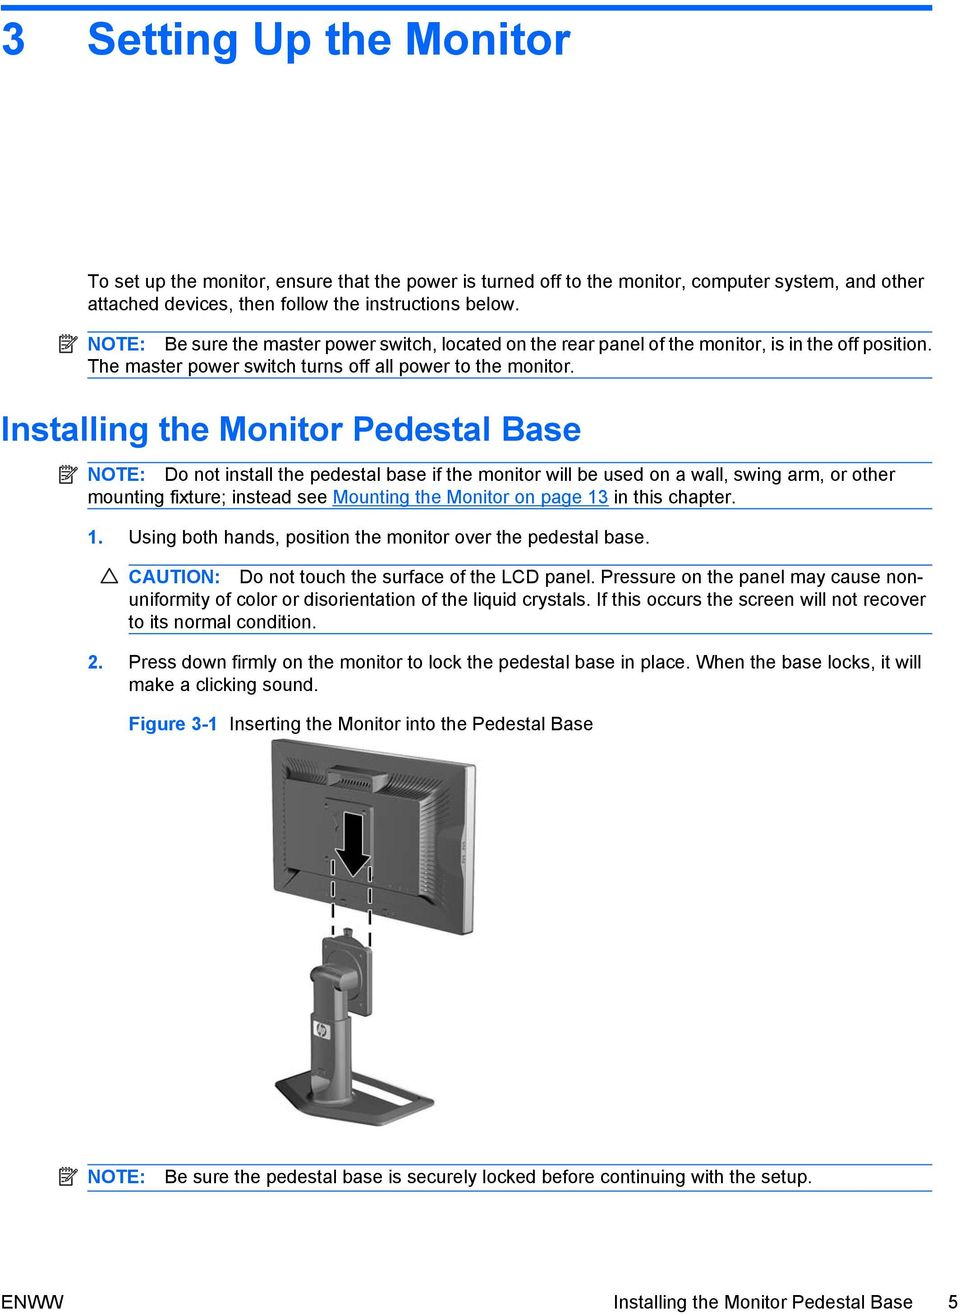 Installing the Monitor Pedestal Base NOTE: Do not install the pedestal base if the monitor will be used on a wall, swing arm, or other mounting fixture; instead see Mounting the Monitor on page 13 in